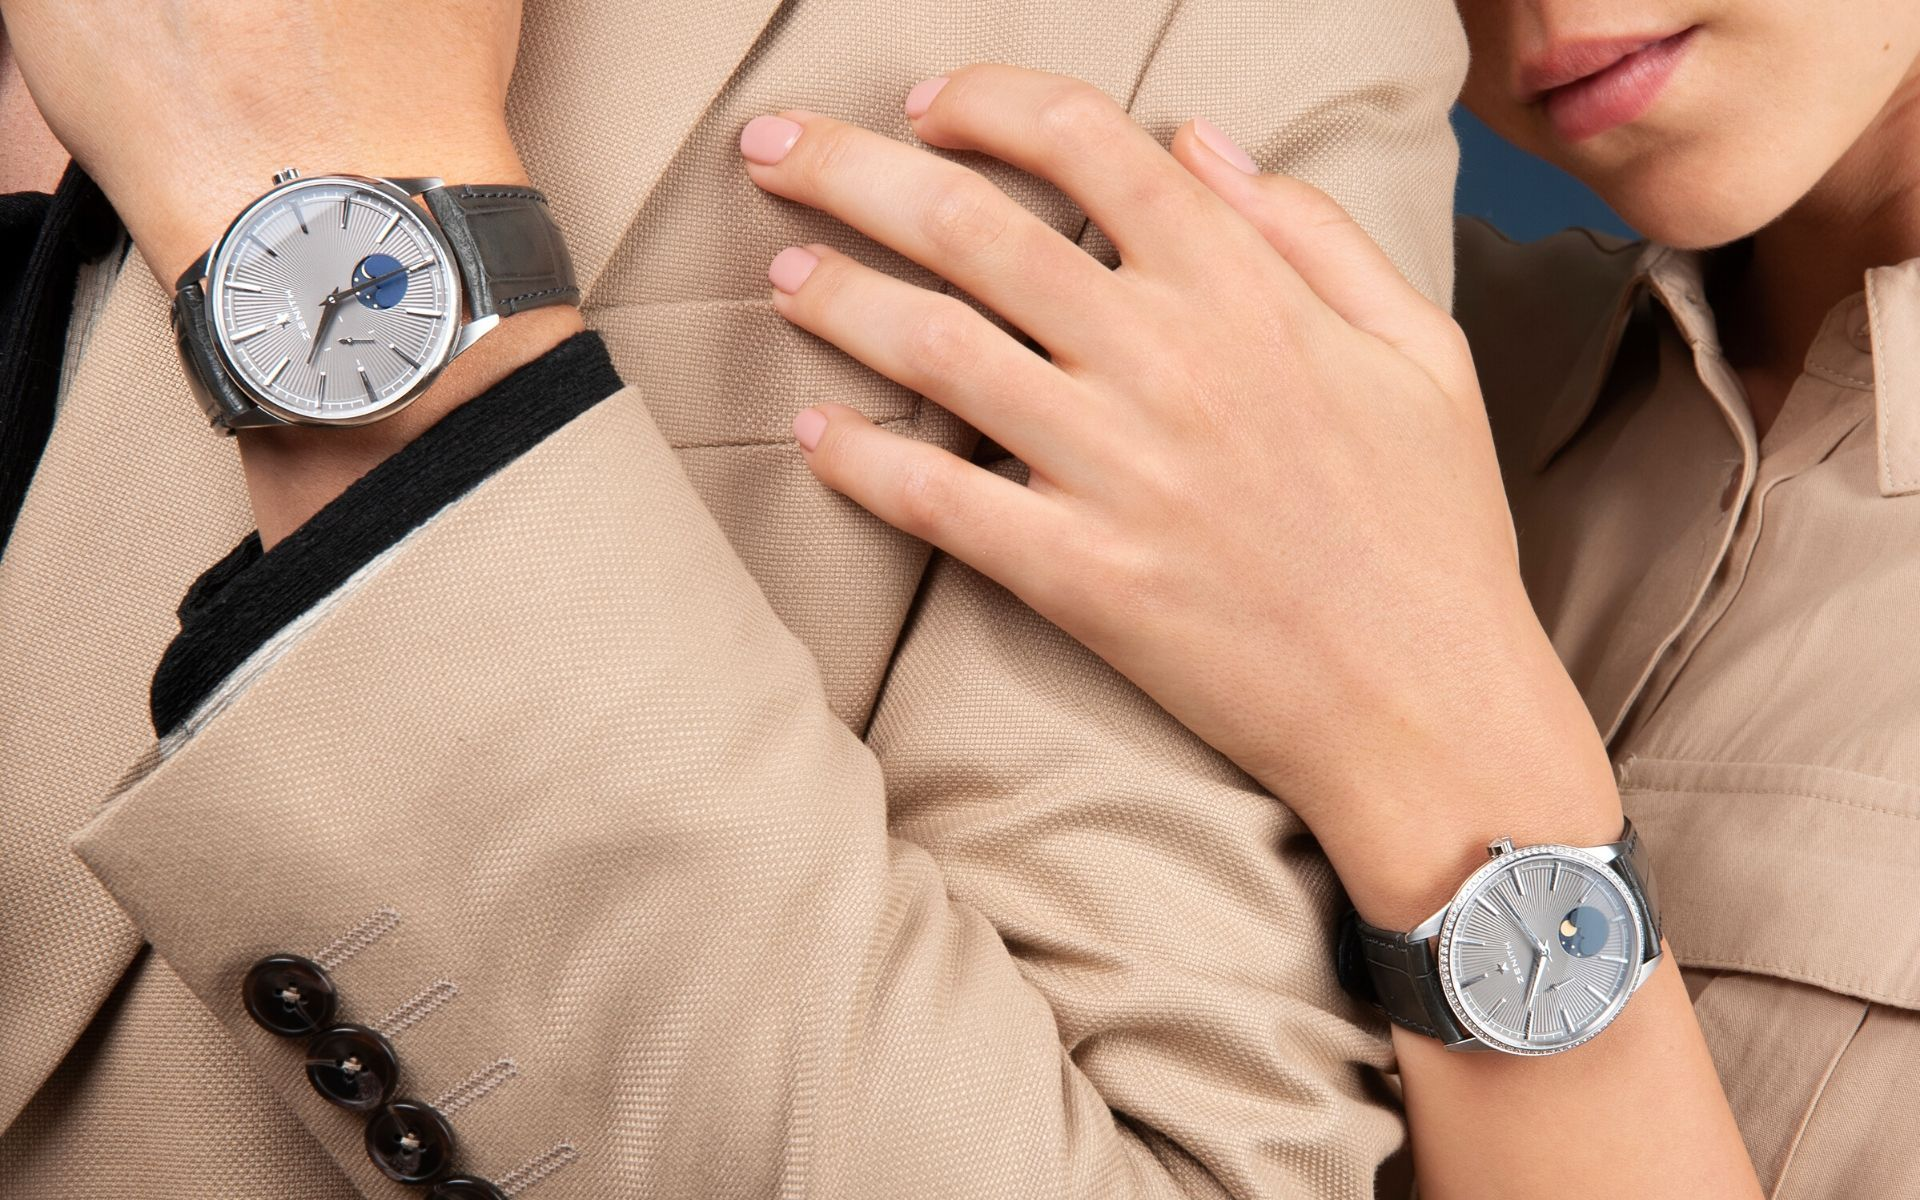 Gifts for Valentine's Day 2020: His and Her Watches For Couples